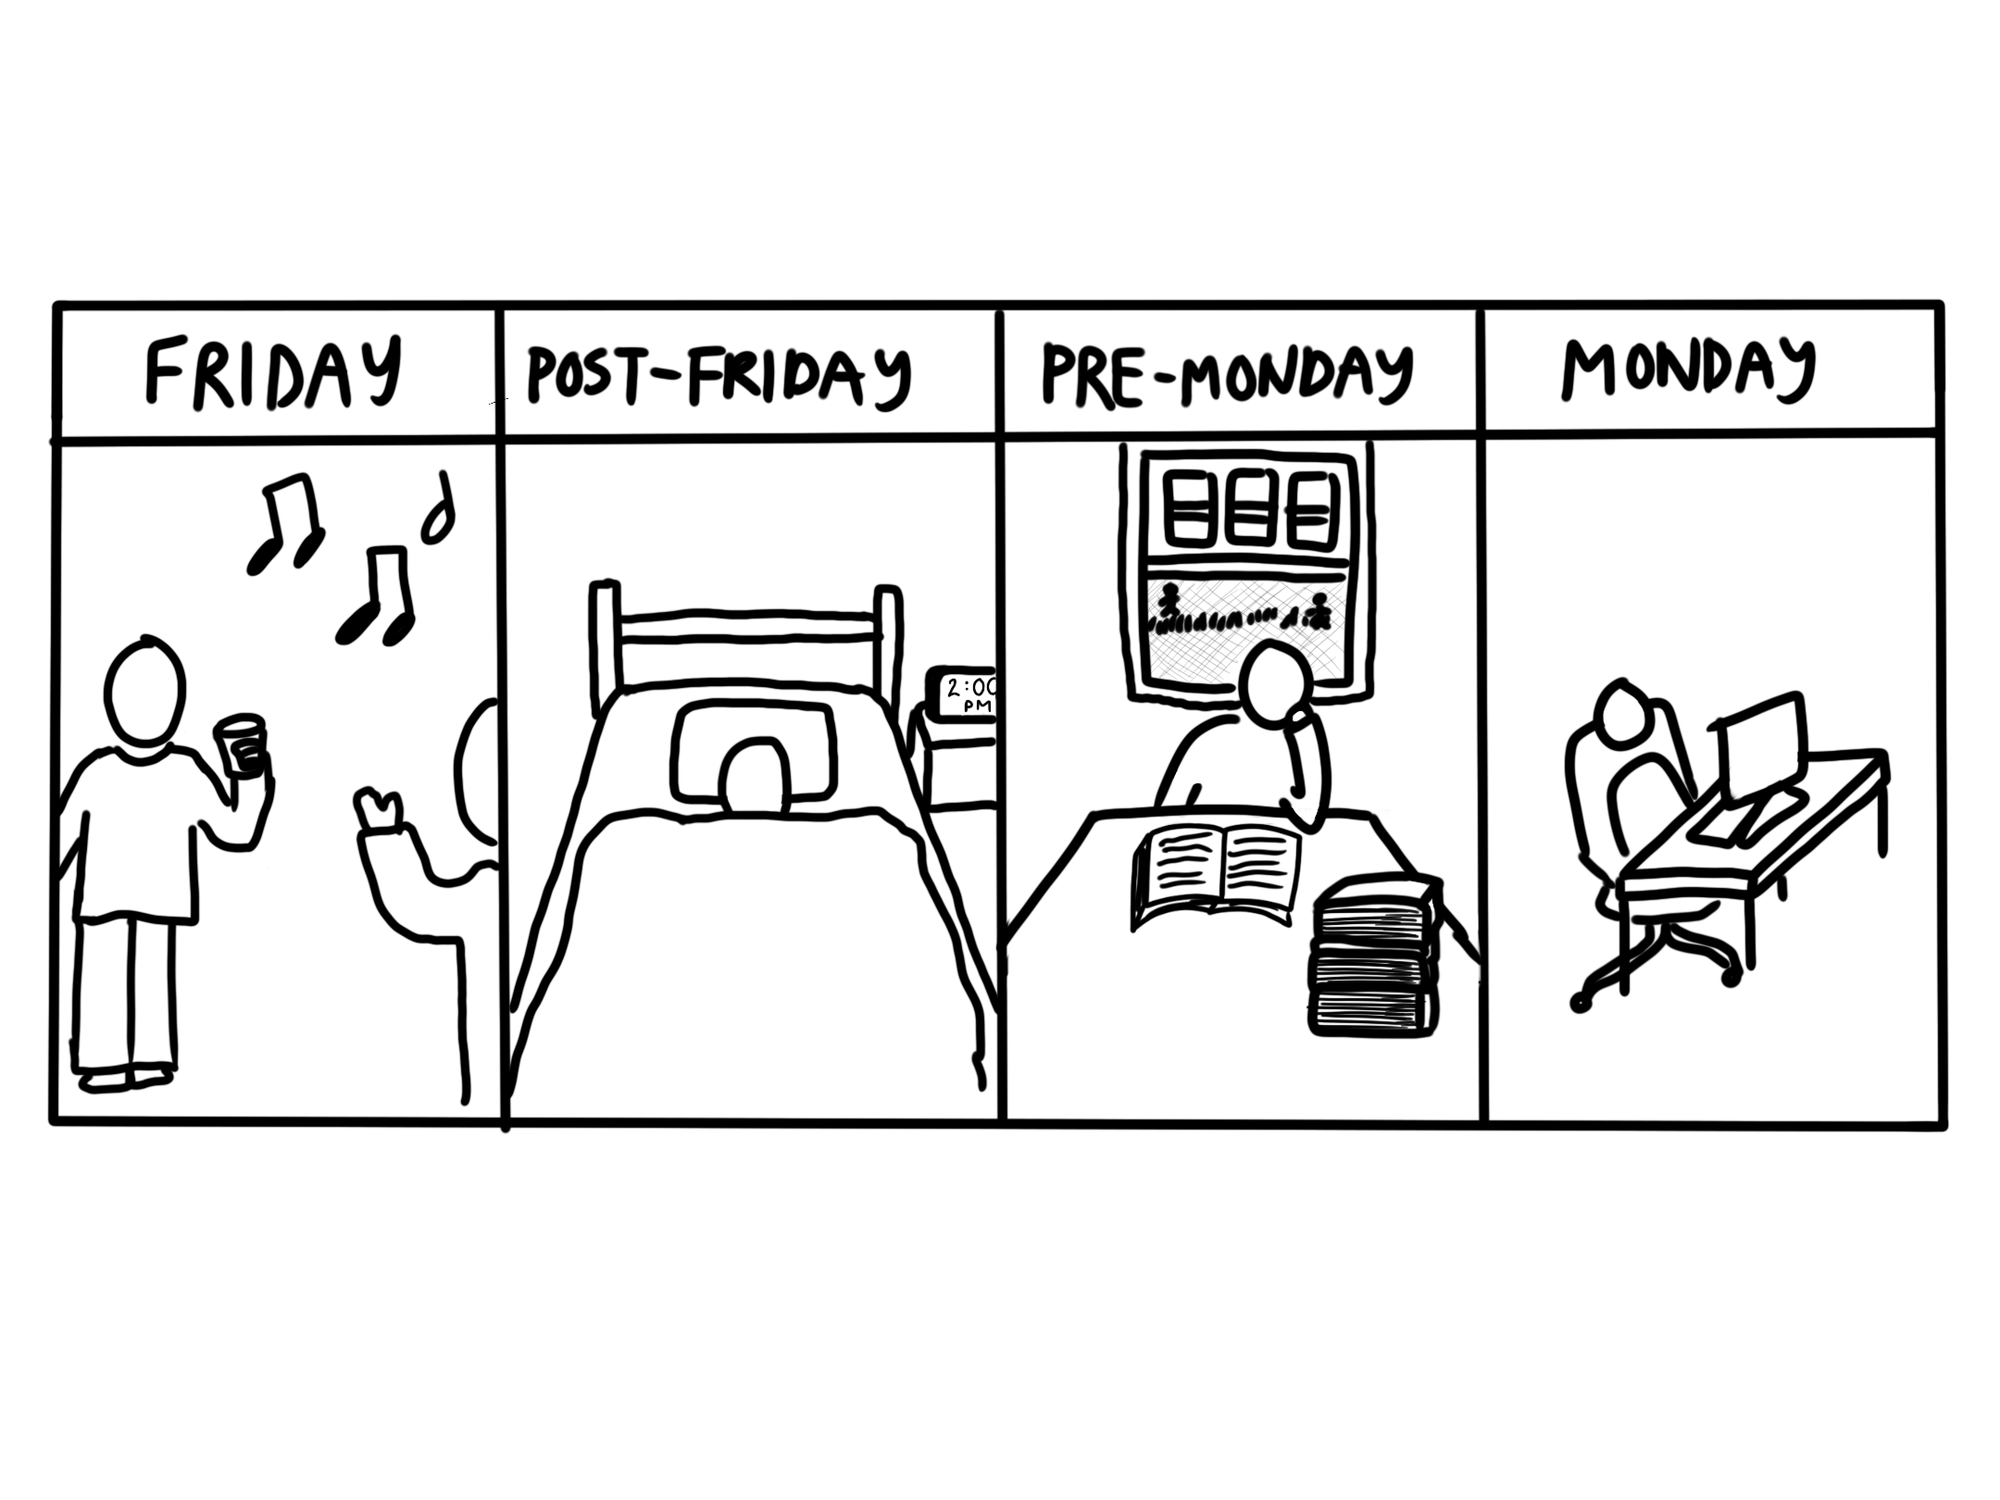 Working through the weekends